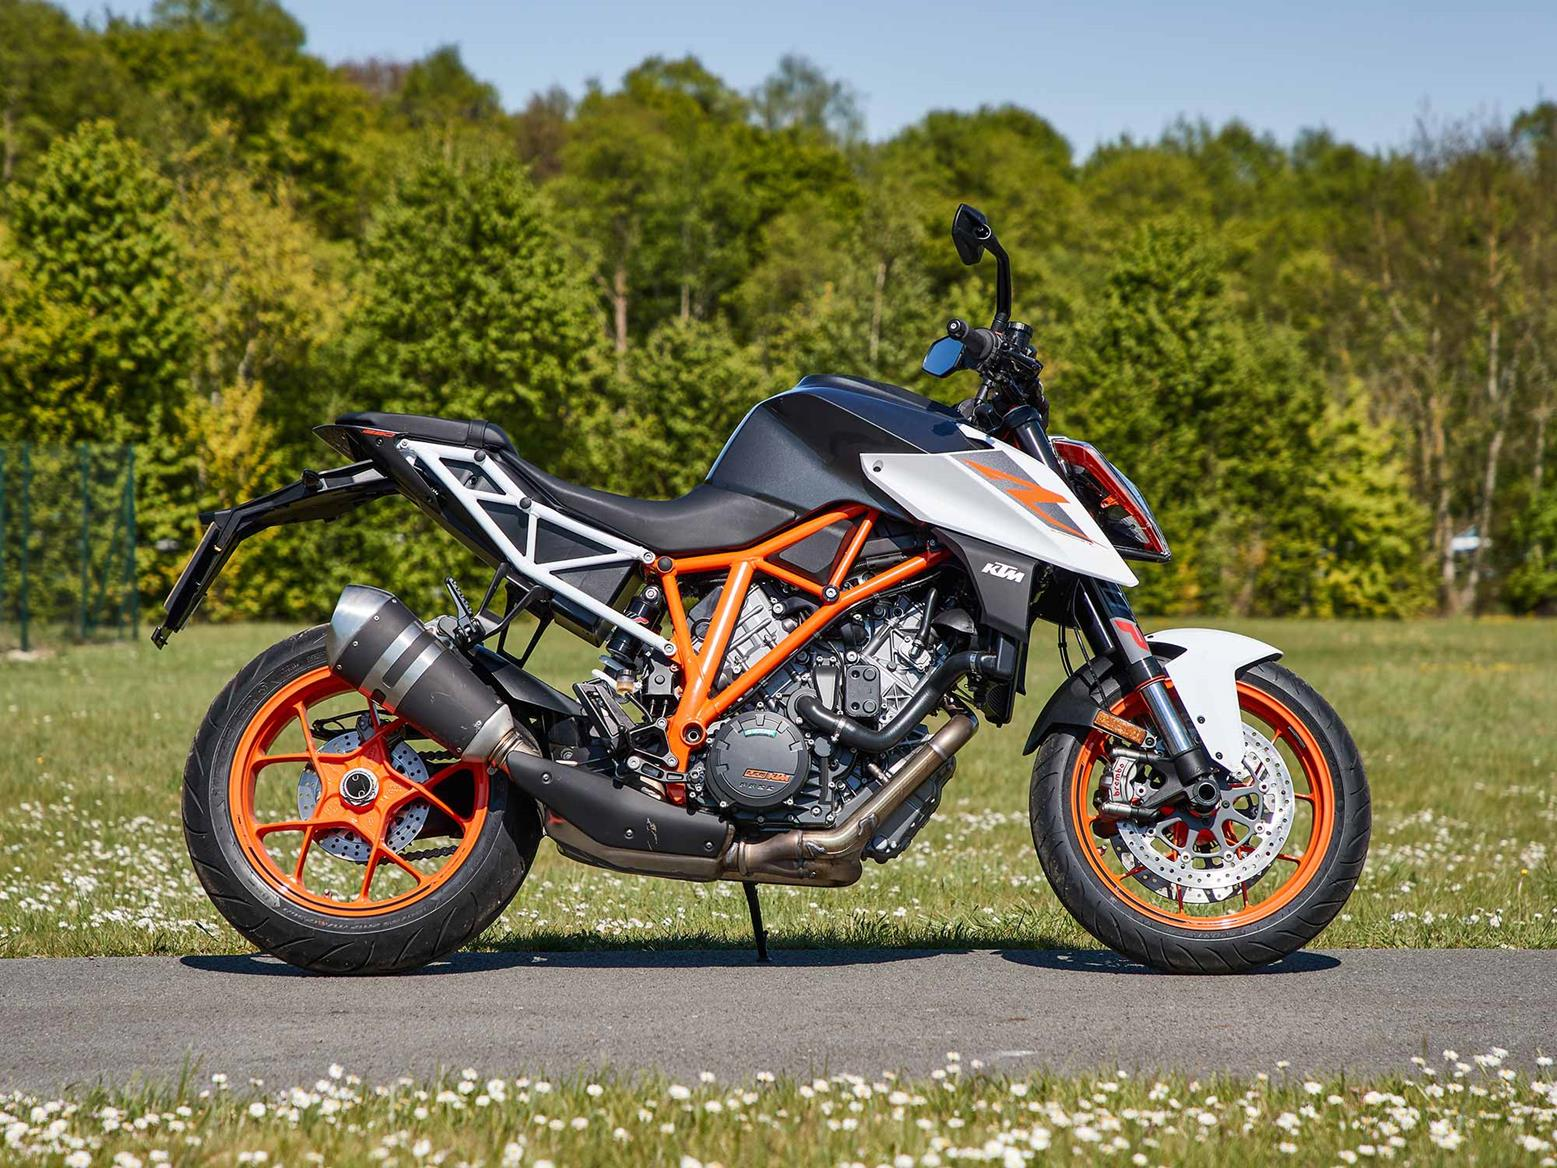 A side-on view of the 2017 KTM 1290 Super Duke R